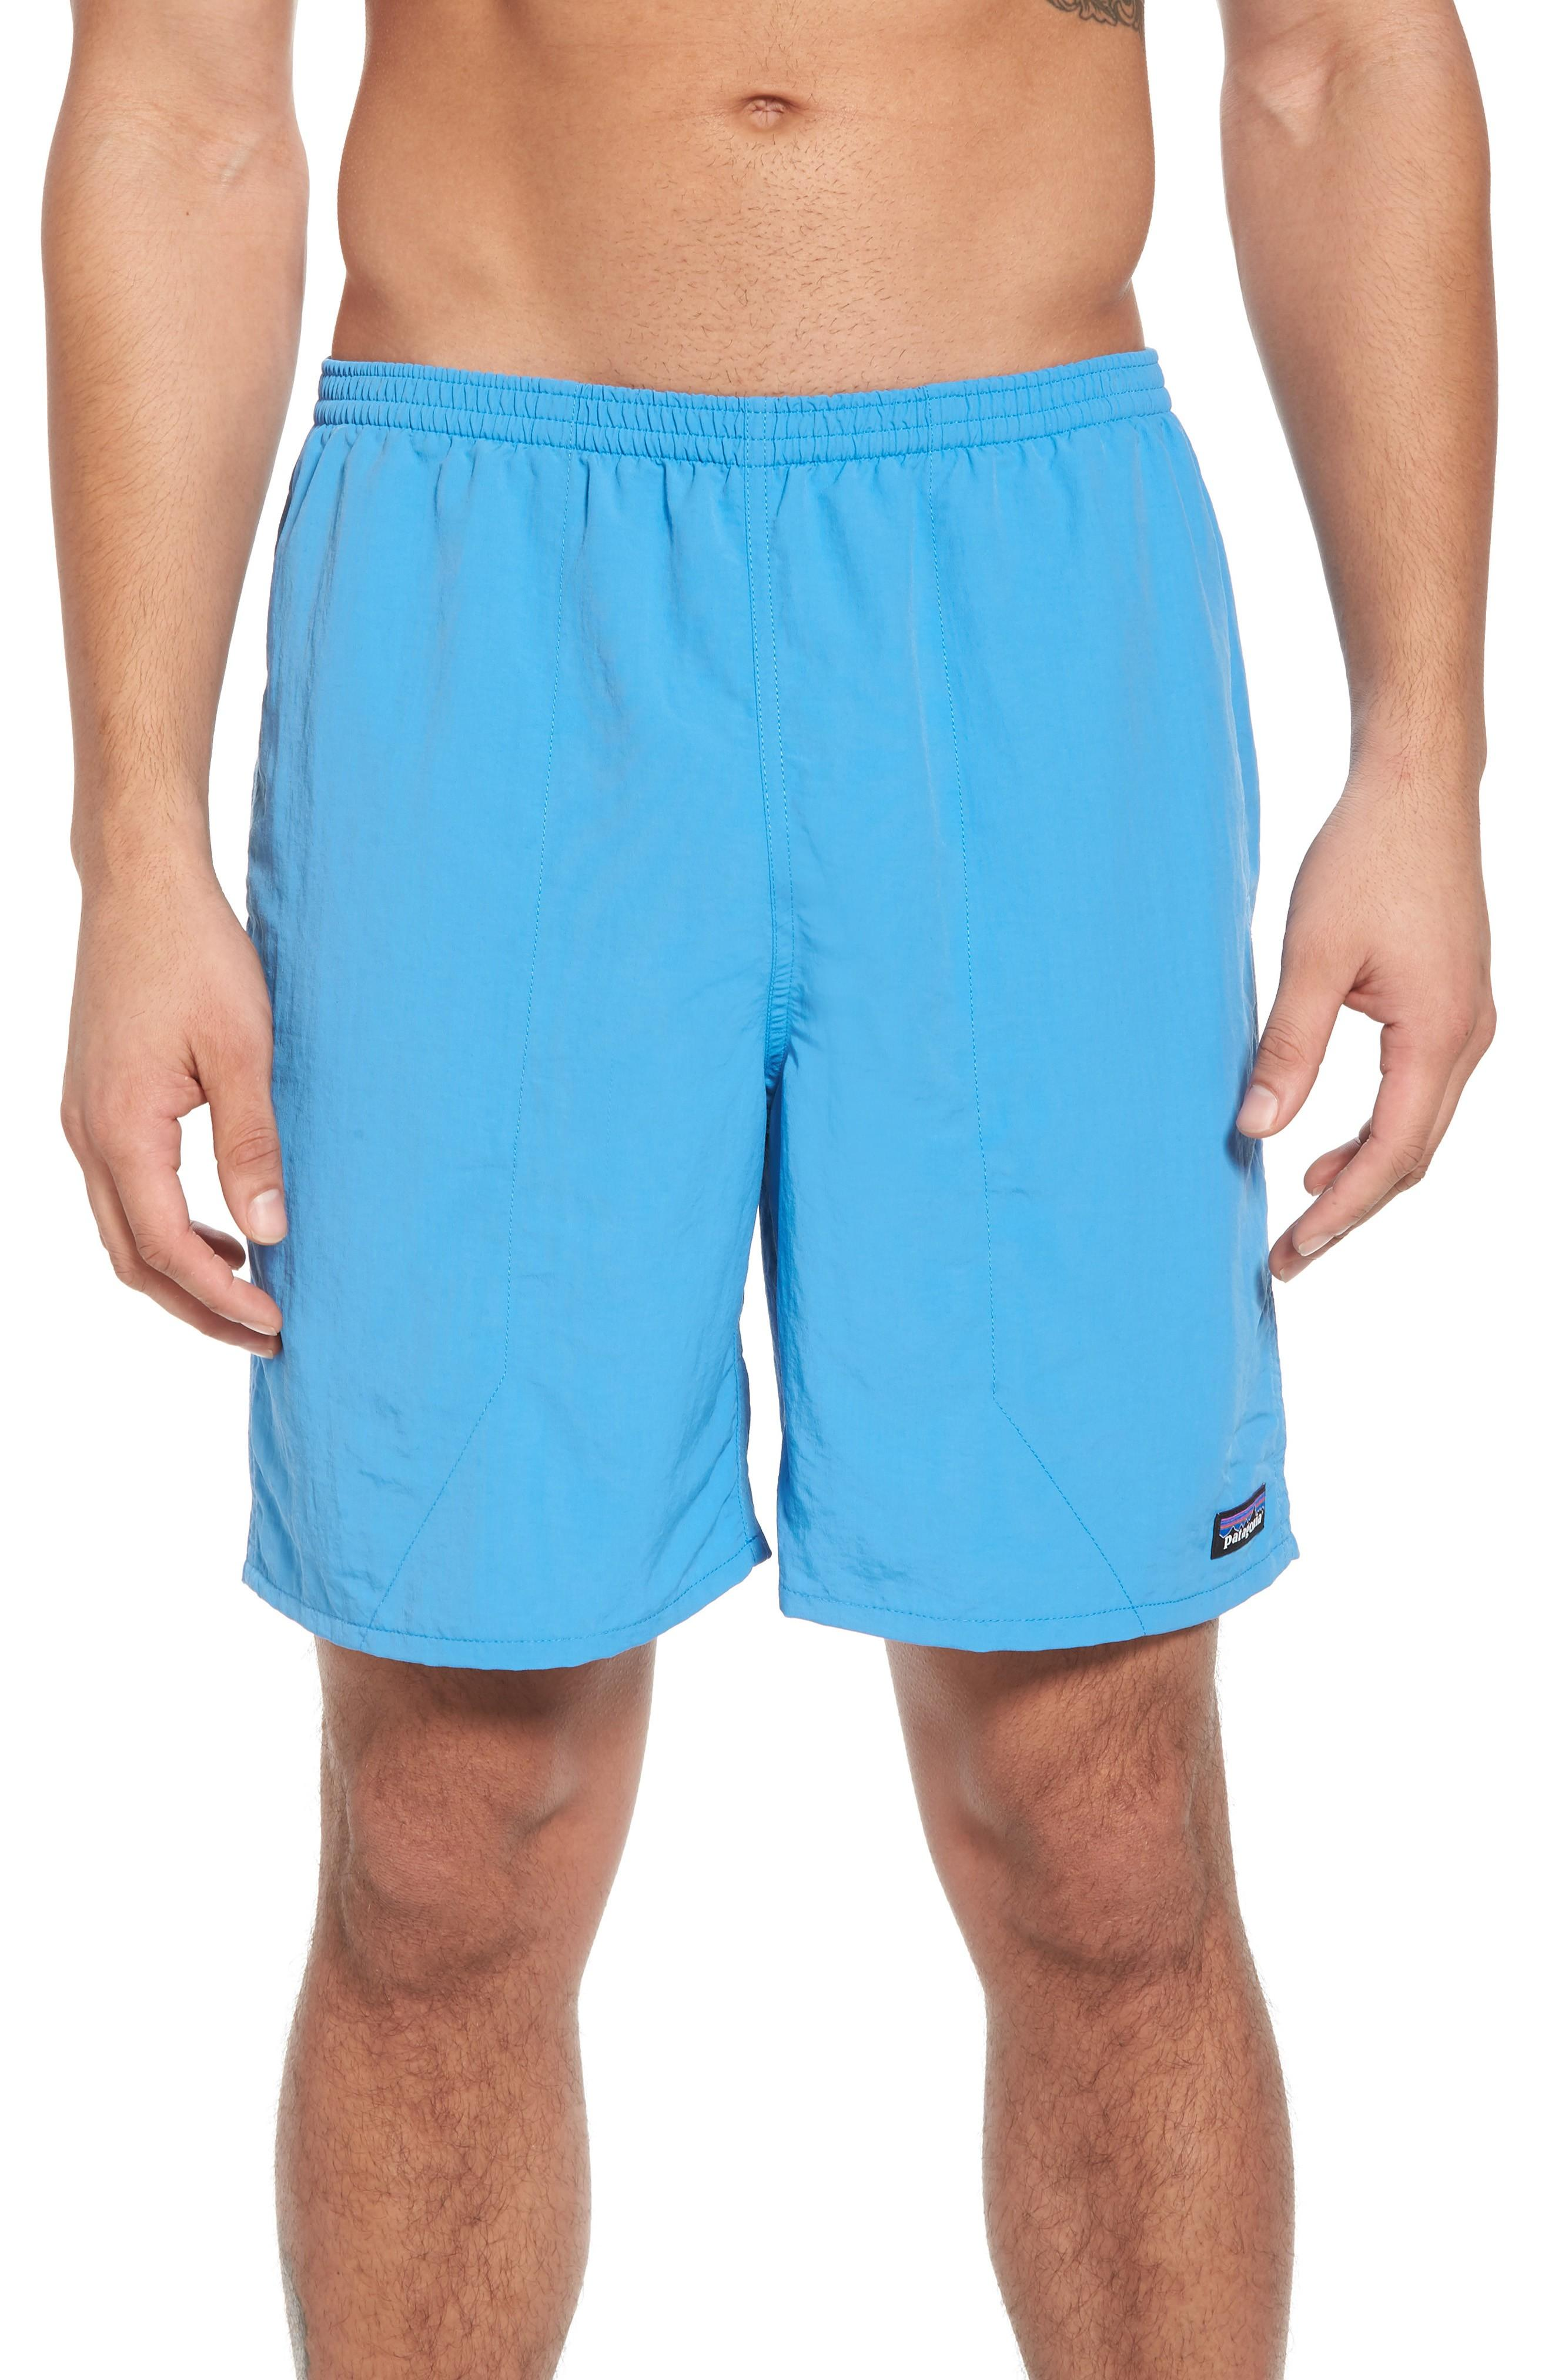 da561688401d Style Name  Patagonia Baggies 7-Inch Swim Trunks. Style Number  5571071.